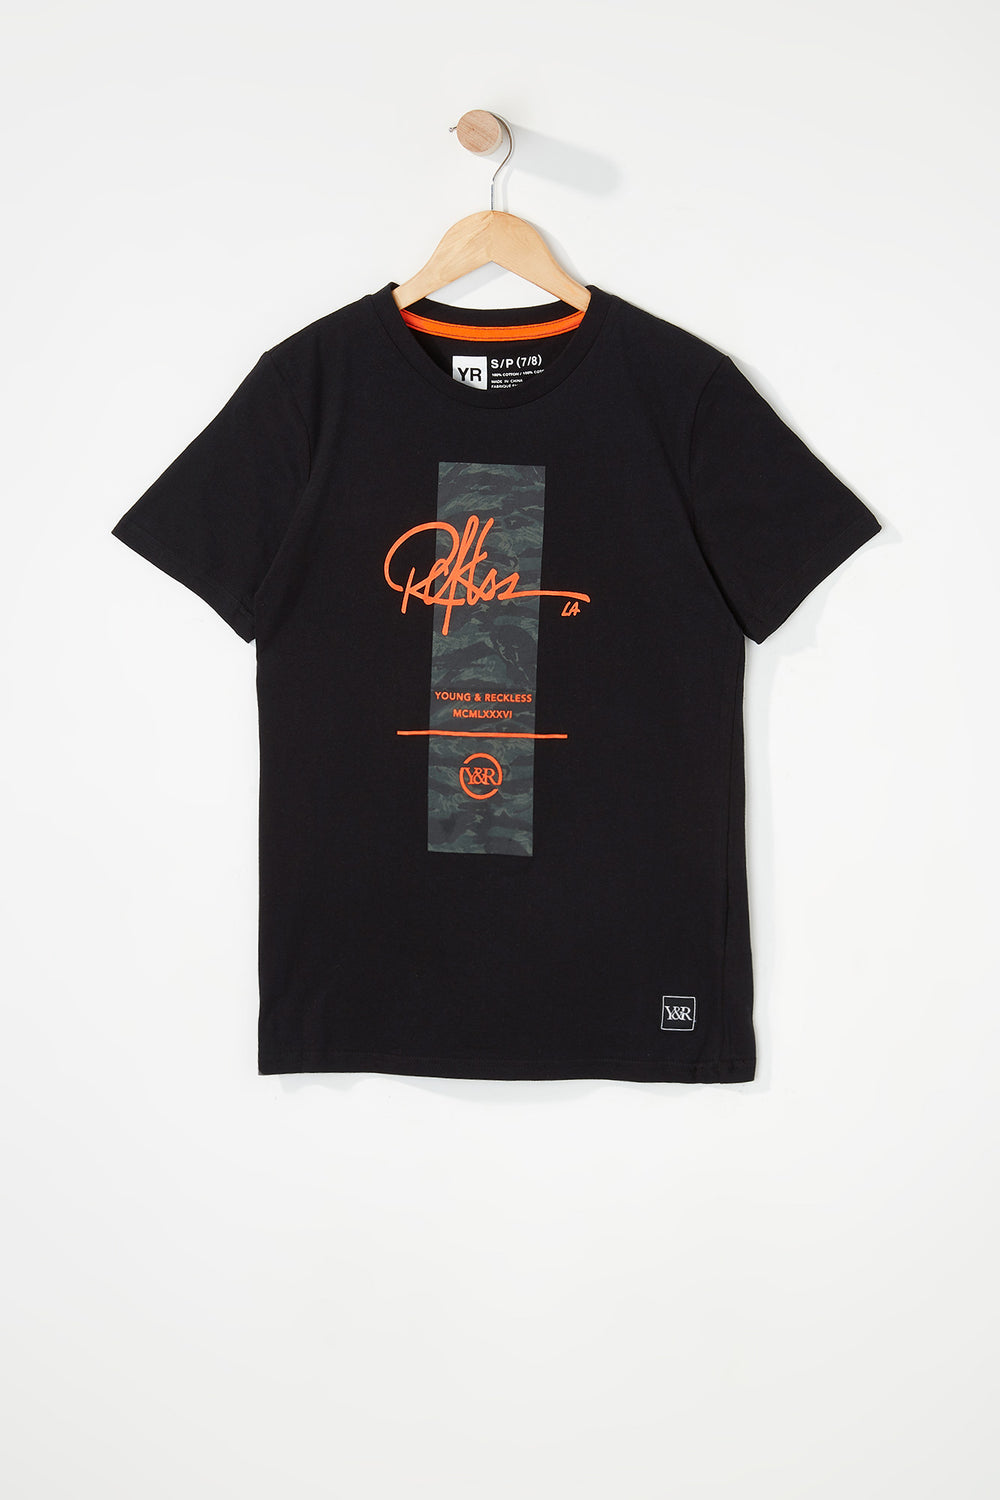 Young & Reckless Boys Camo & Neon Logo T-Shirt Black